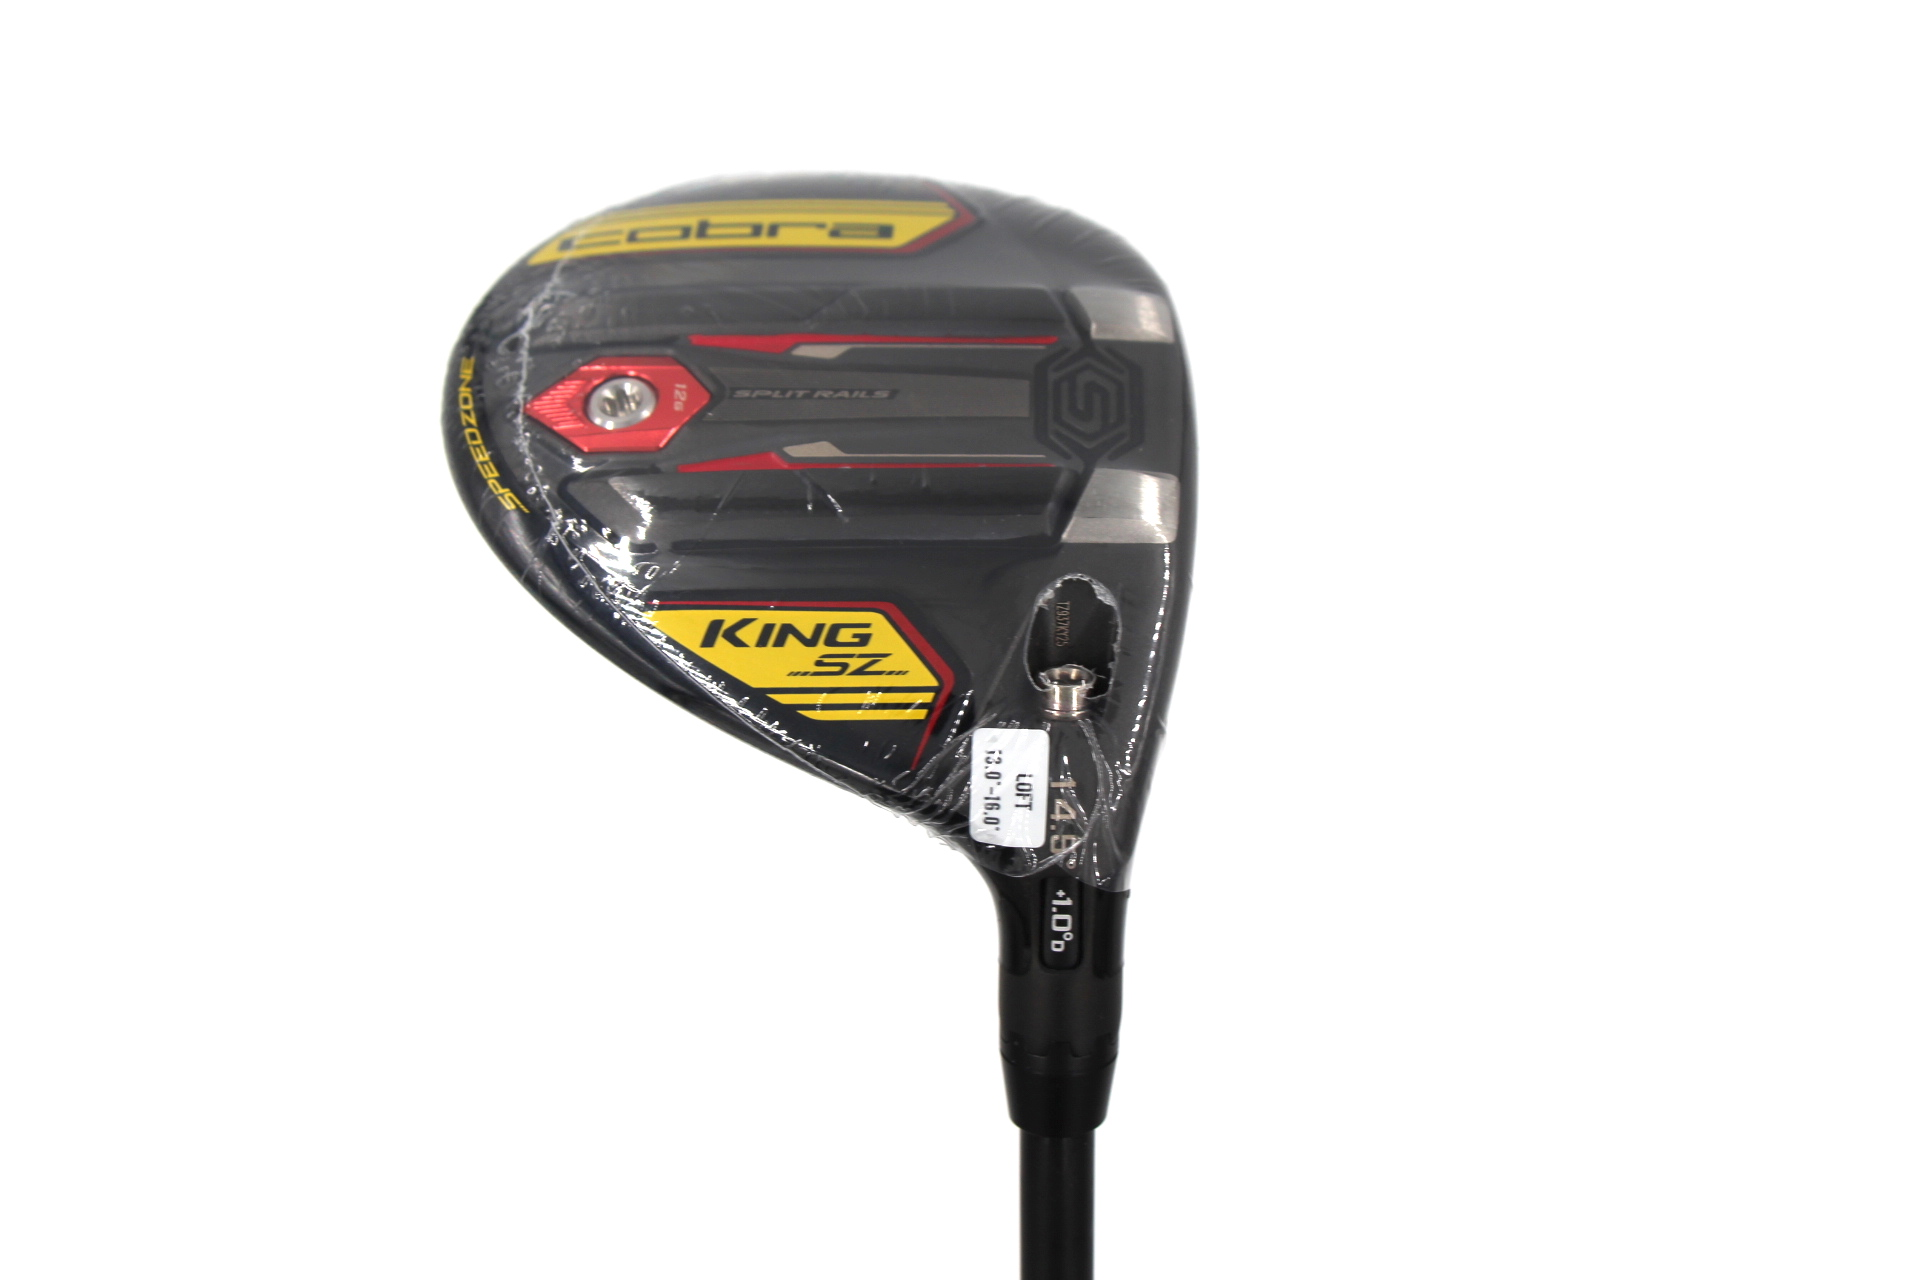 Cobra King Speedzone 3-Wood Fairway